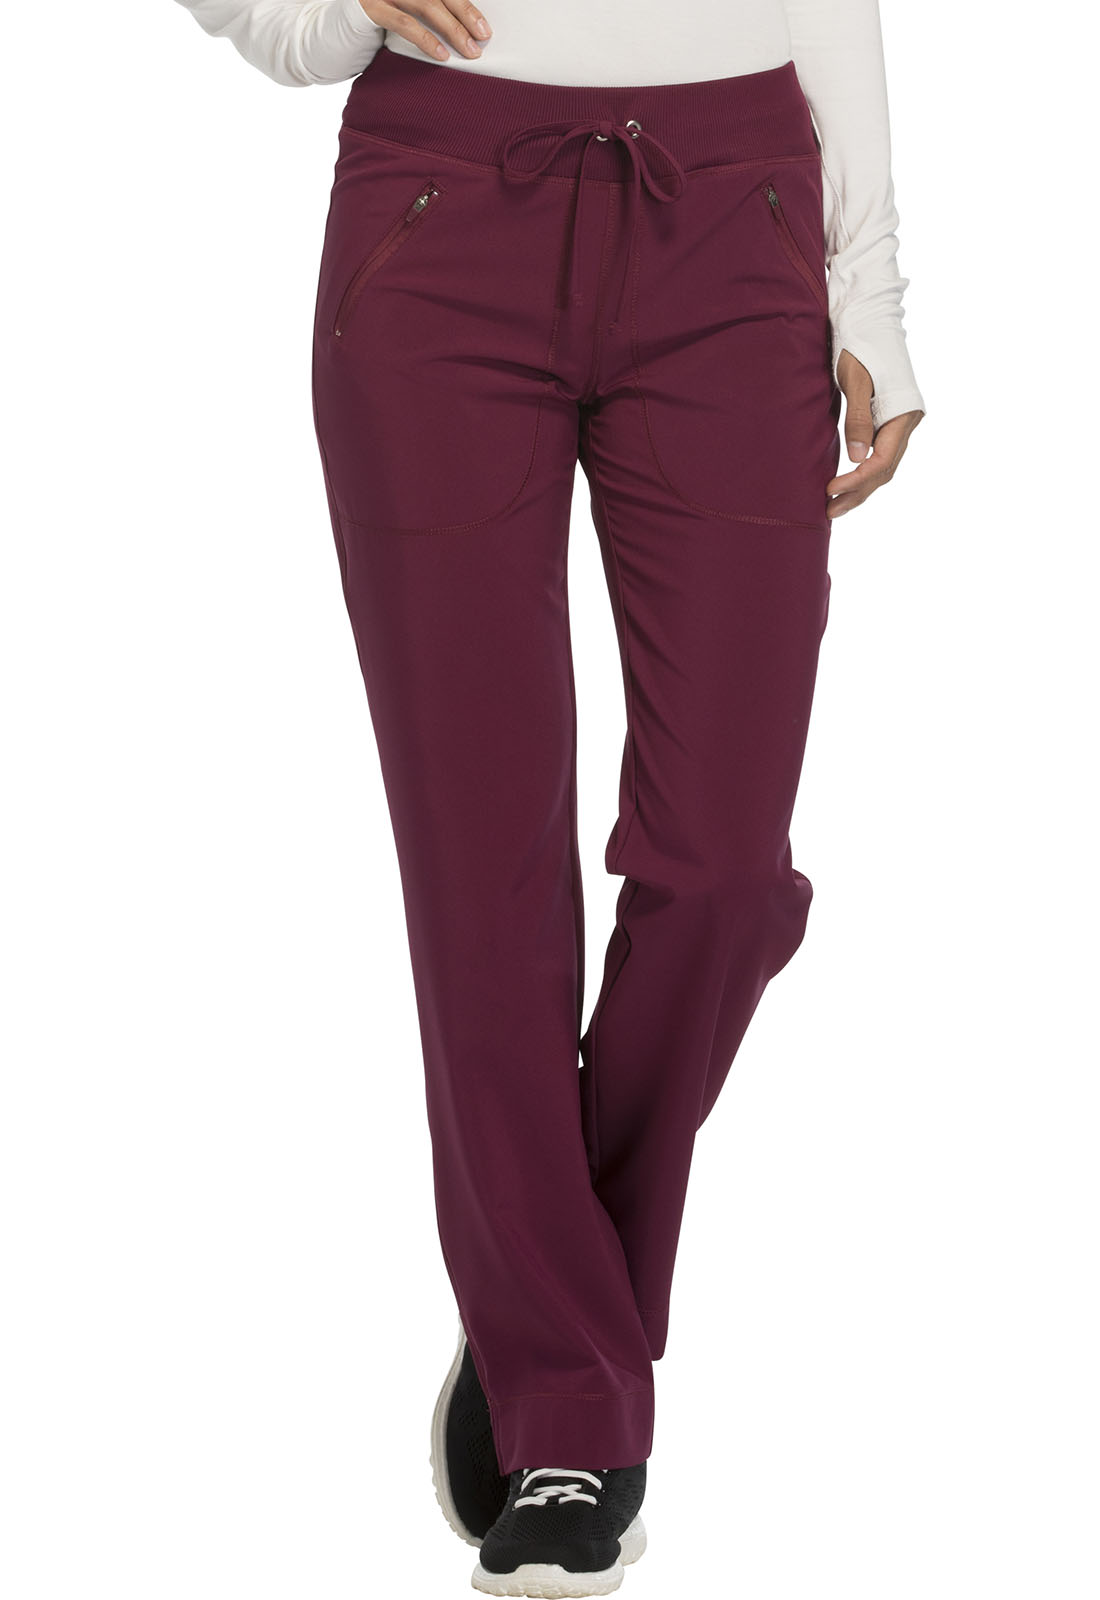 209856e8a52 Infinity Mid Rise Tapered Leg Drawstring Pants in Wine (Antimicrobial)